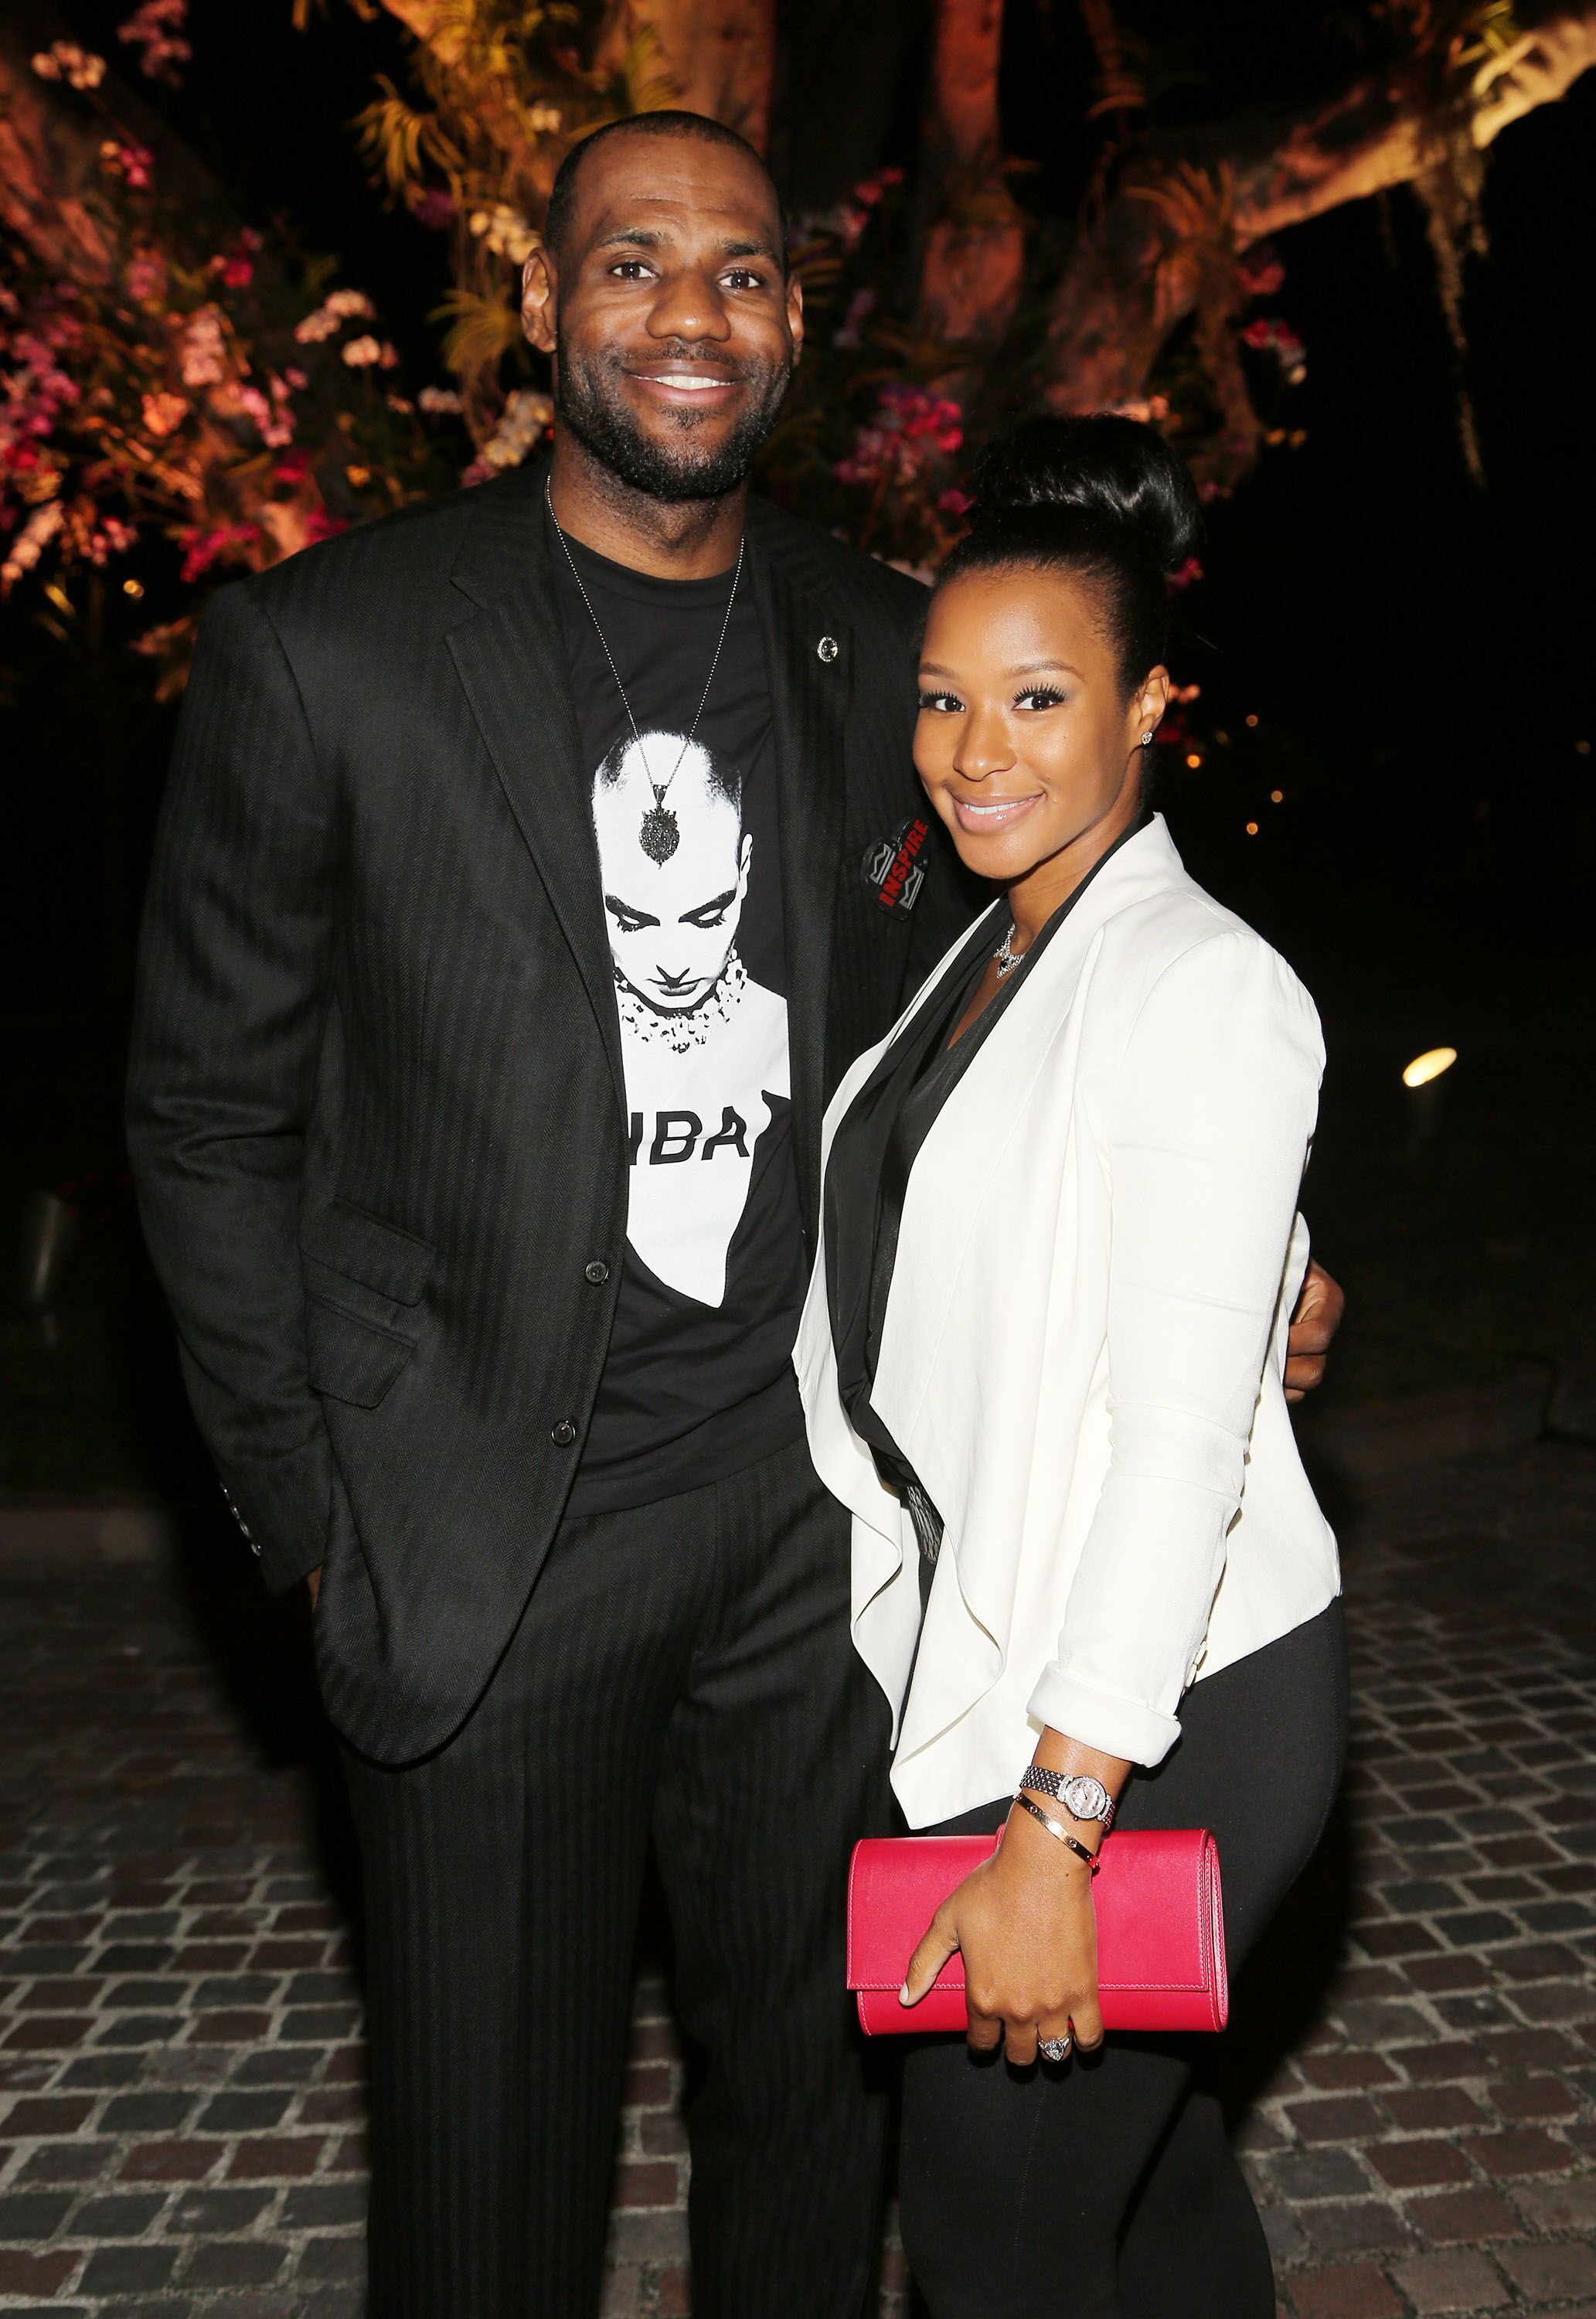 LeBron and Savannah James attend a formal event together | Source: Getty Images/GlobalImagesUkraine